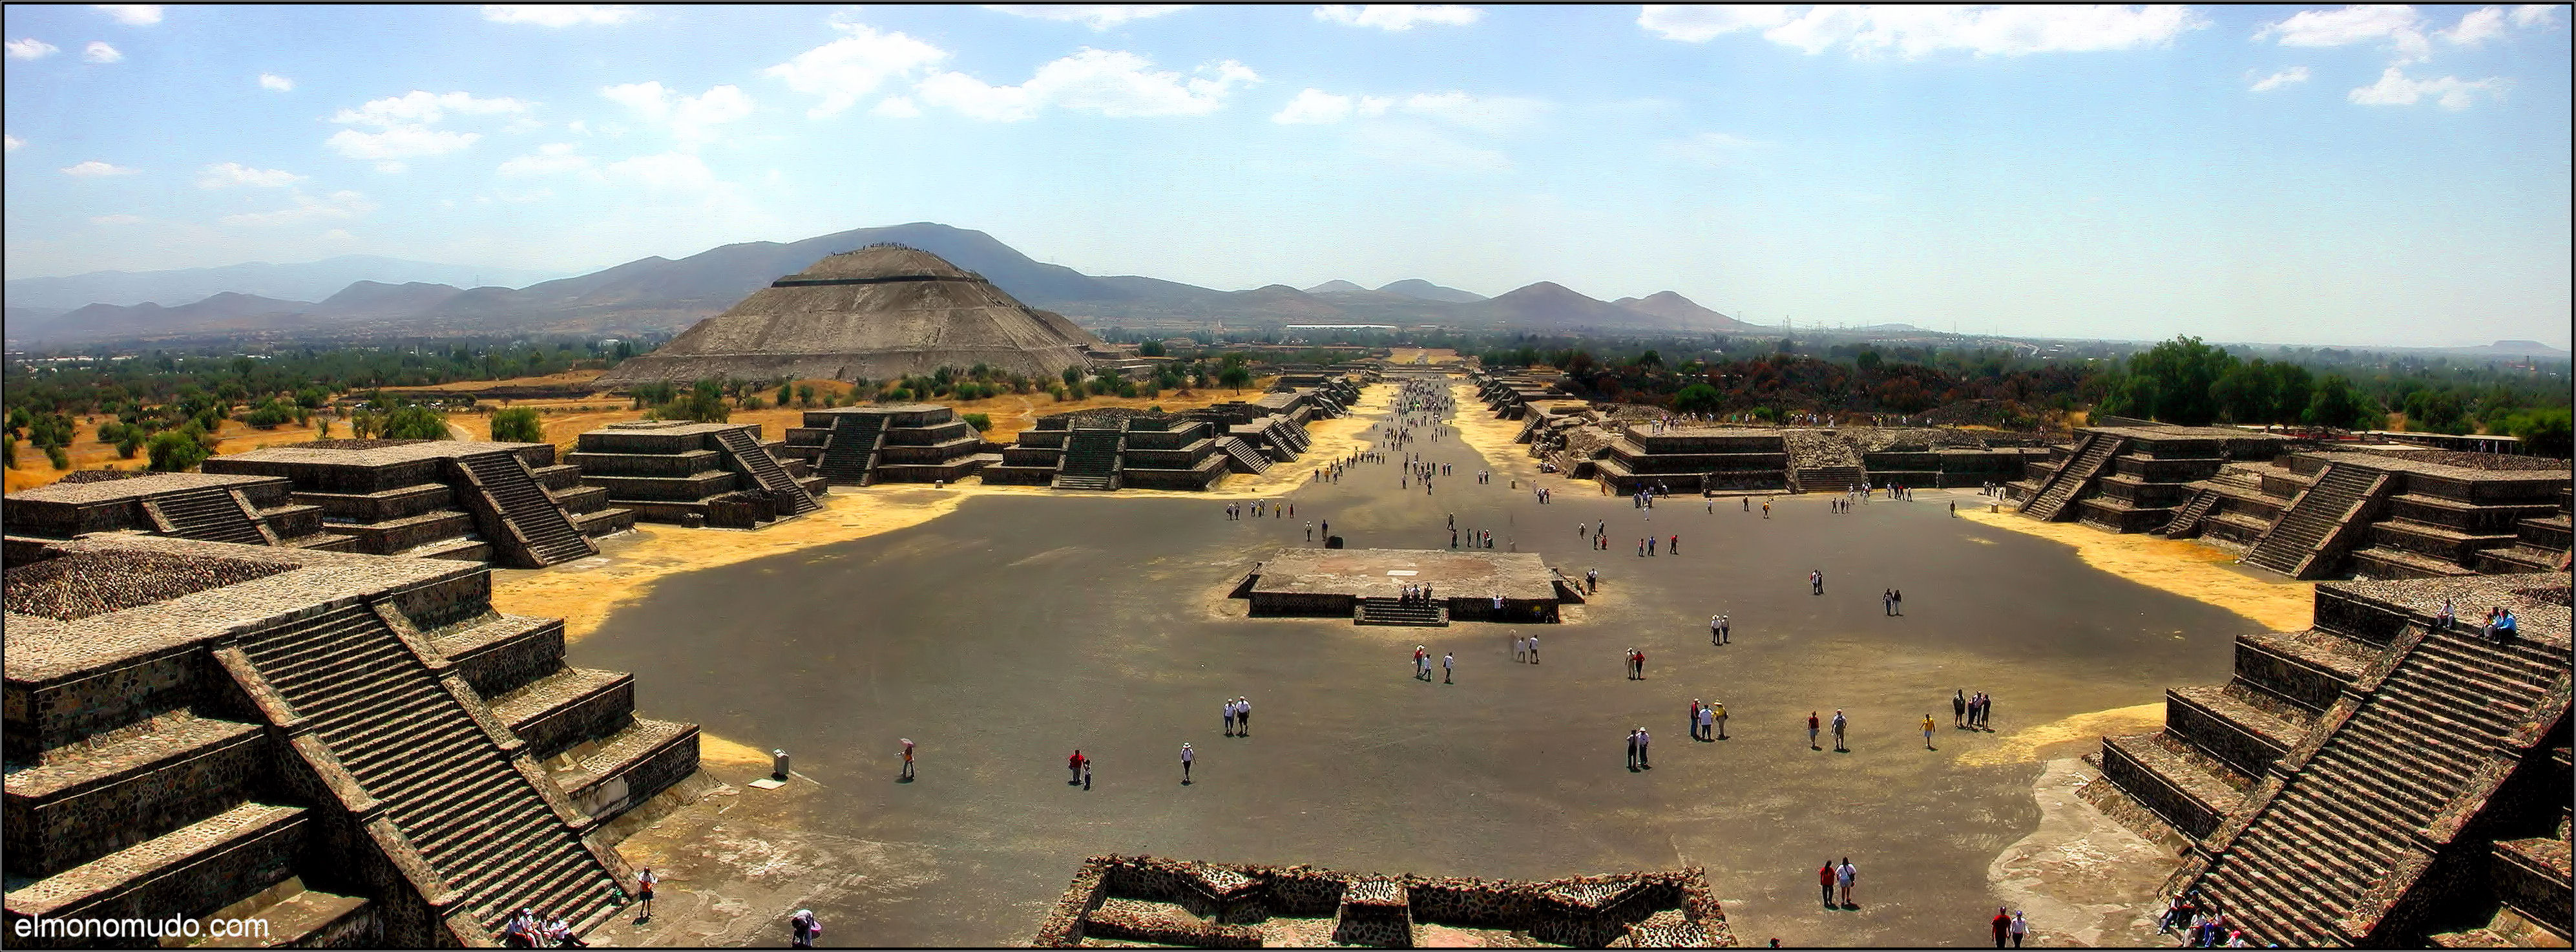 teotihuacan_stich_3987x1473